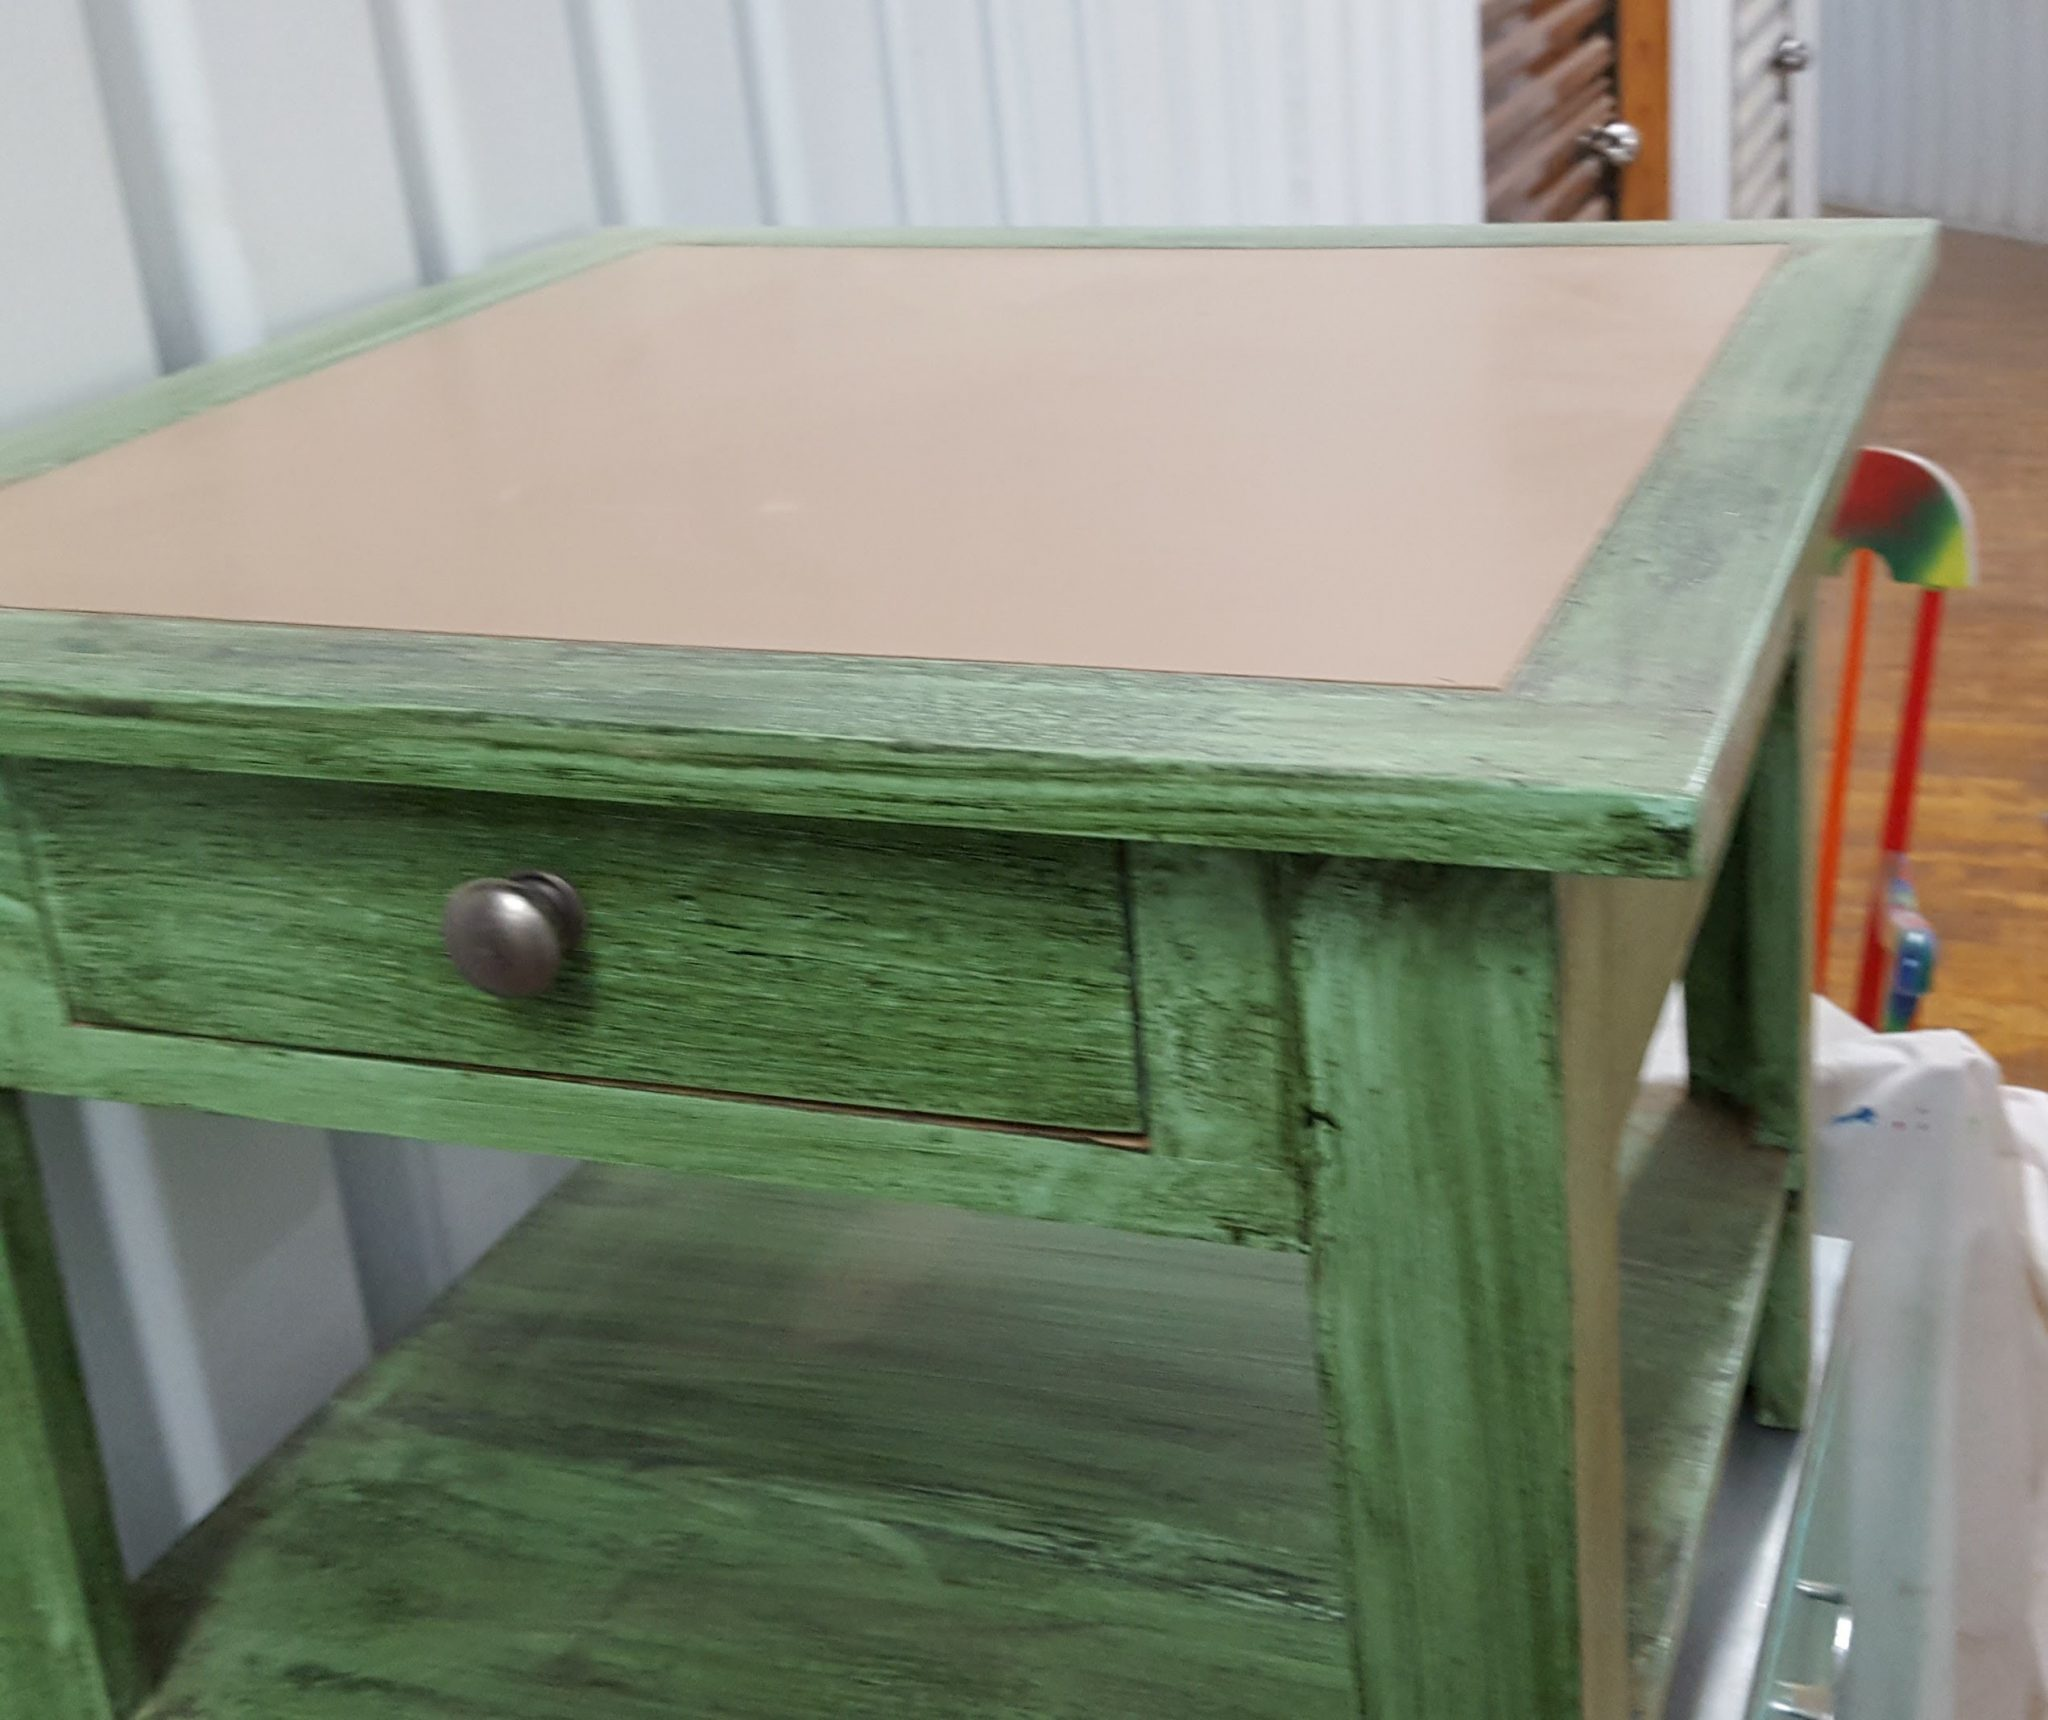 View of end table